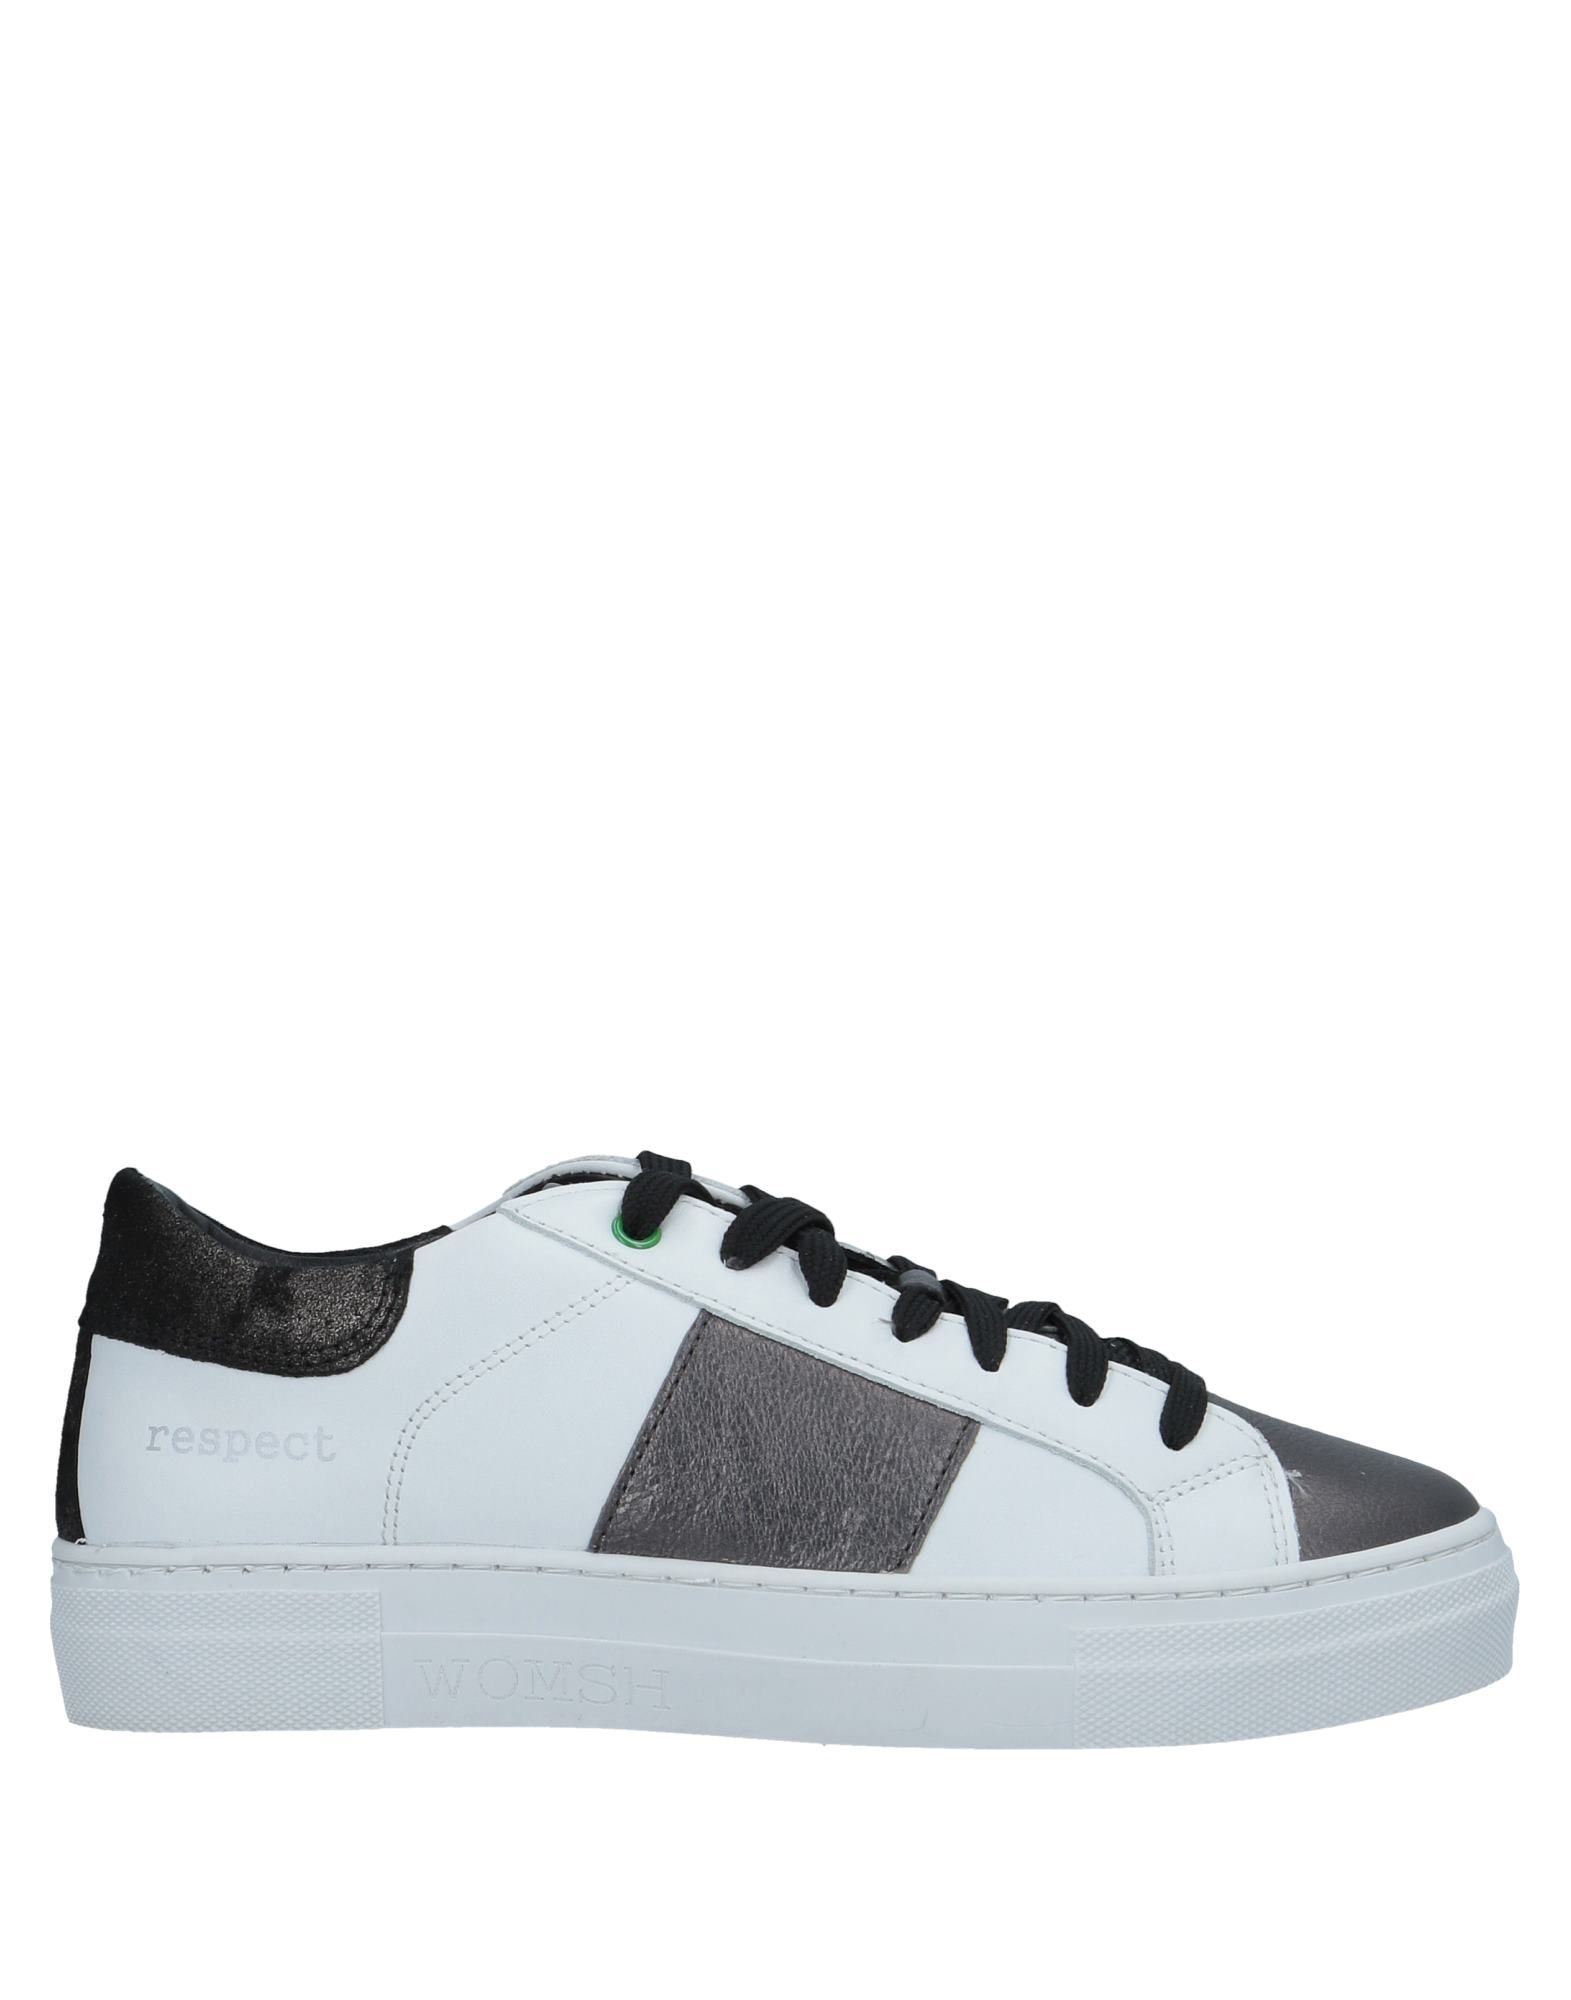 Baskets Womsh Femme Chaussures - Baskets Womsh Blanc Chaussures Femme casual sauvages 92c444